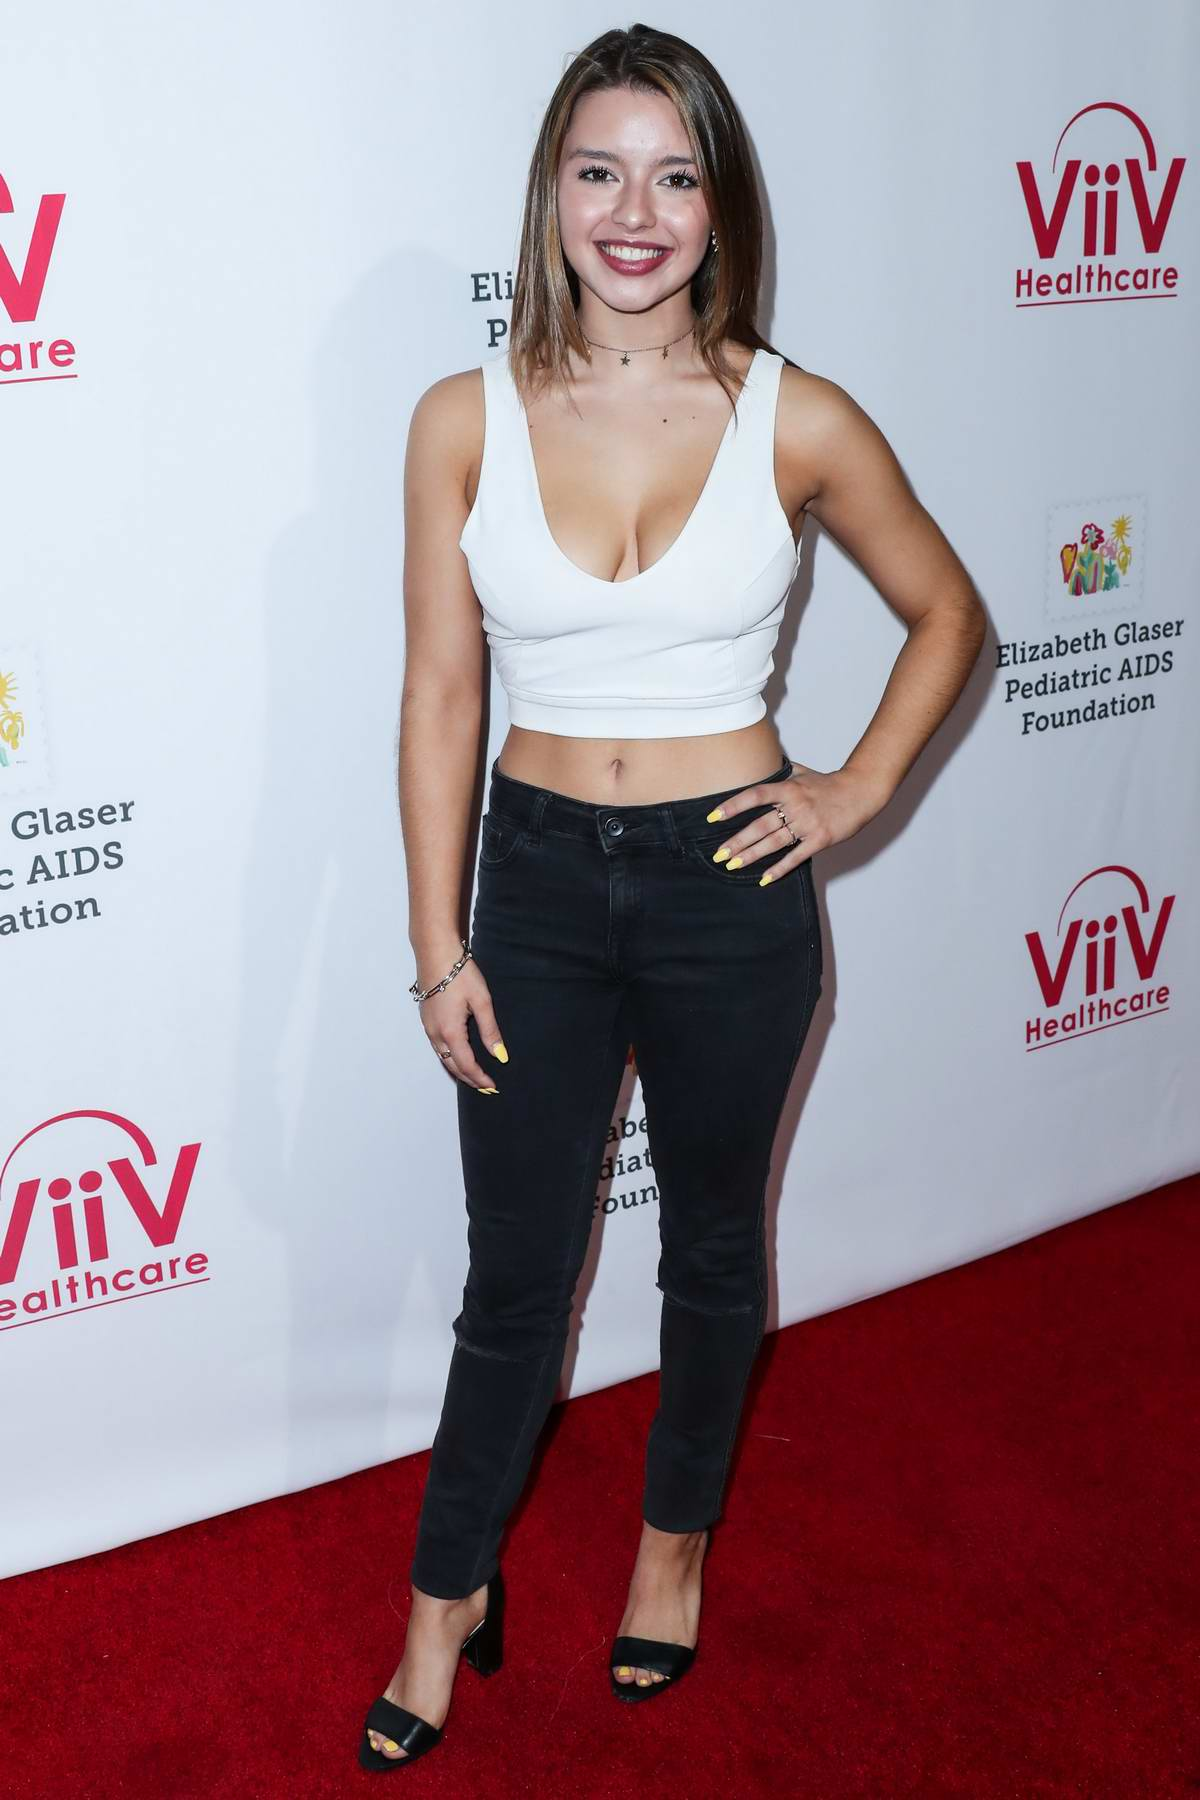 Fatima Ptacek attends the 30th Annual A Time For Heroes Family Festival at Smashbox Studios in Culver City, California